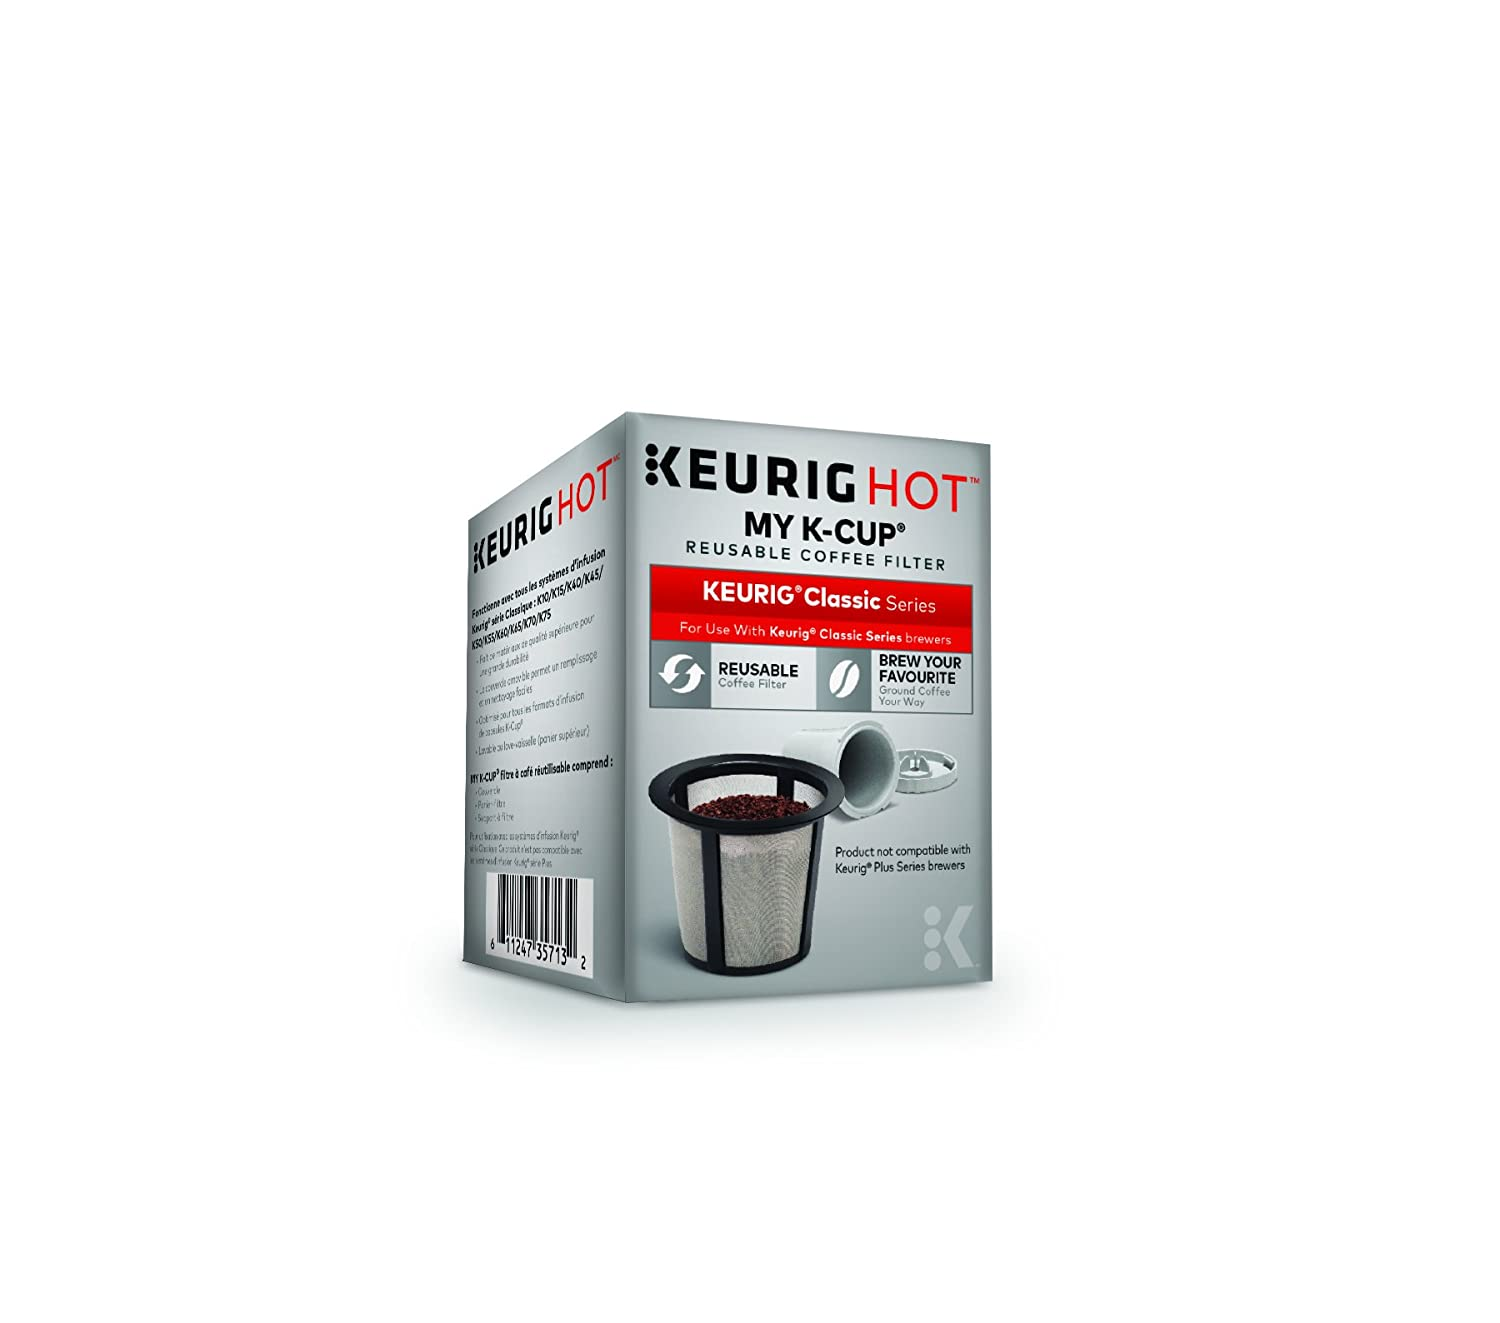 Keurig My K-Cup Reusable Ground Coffee Filter, Compatible with All1.0/Classic Keurig K-Cup Pod Coffee Makers